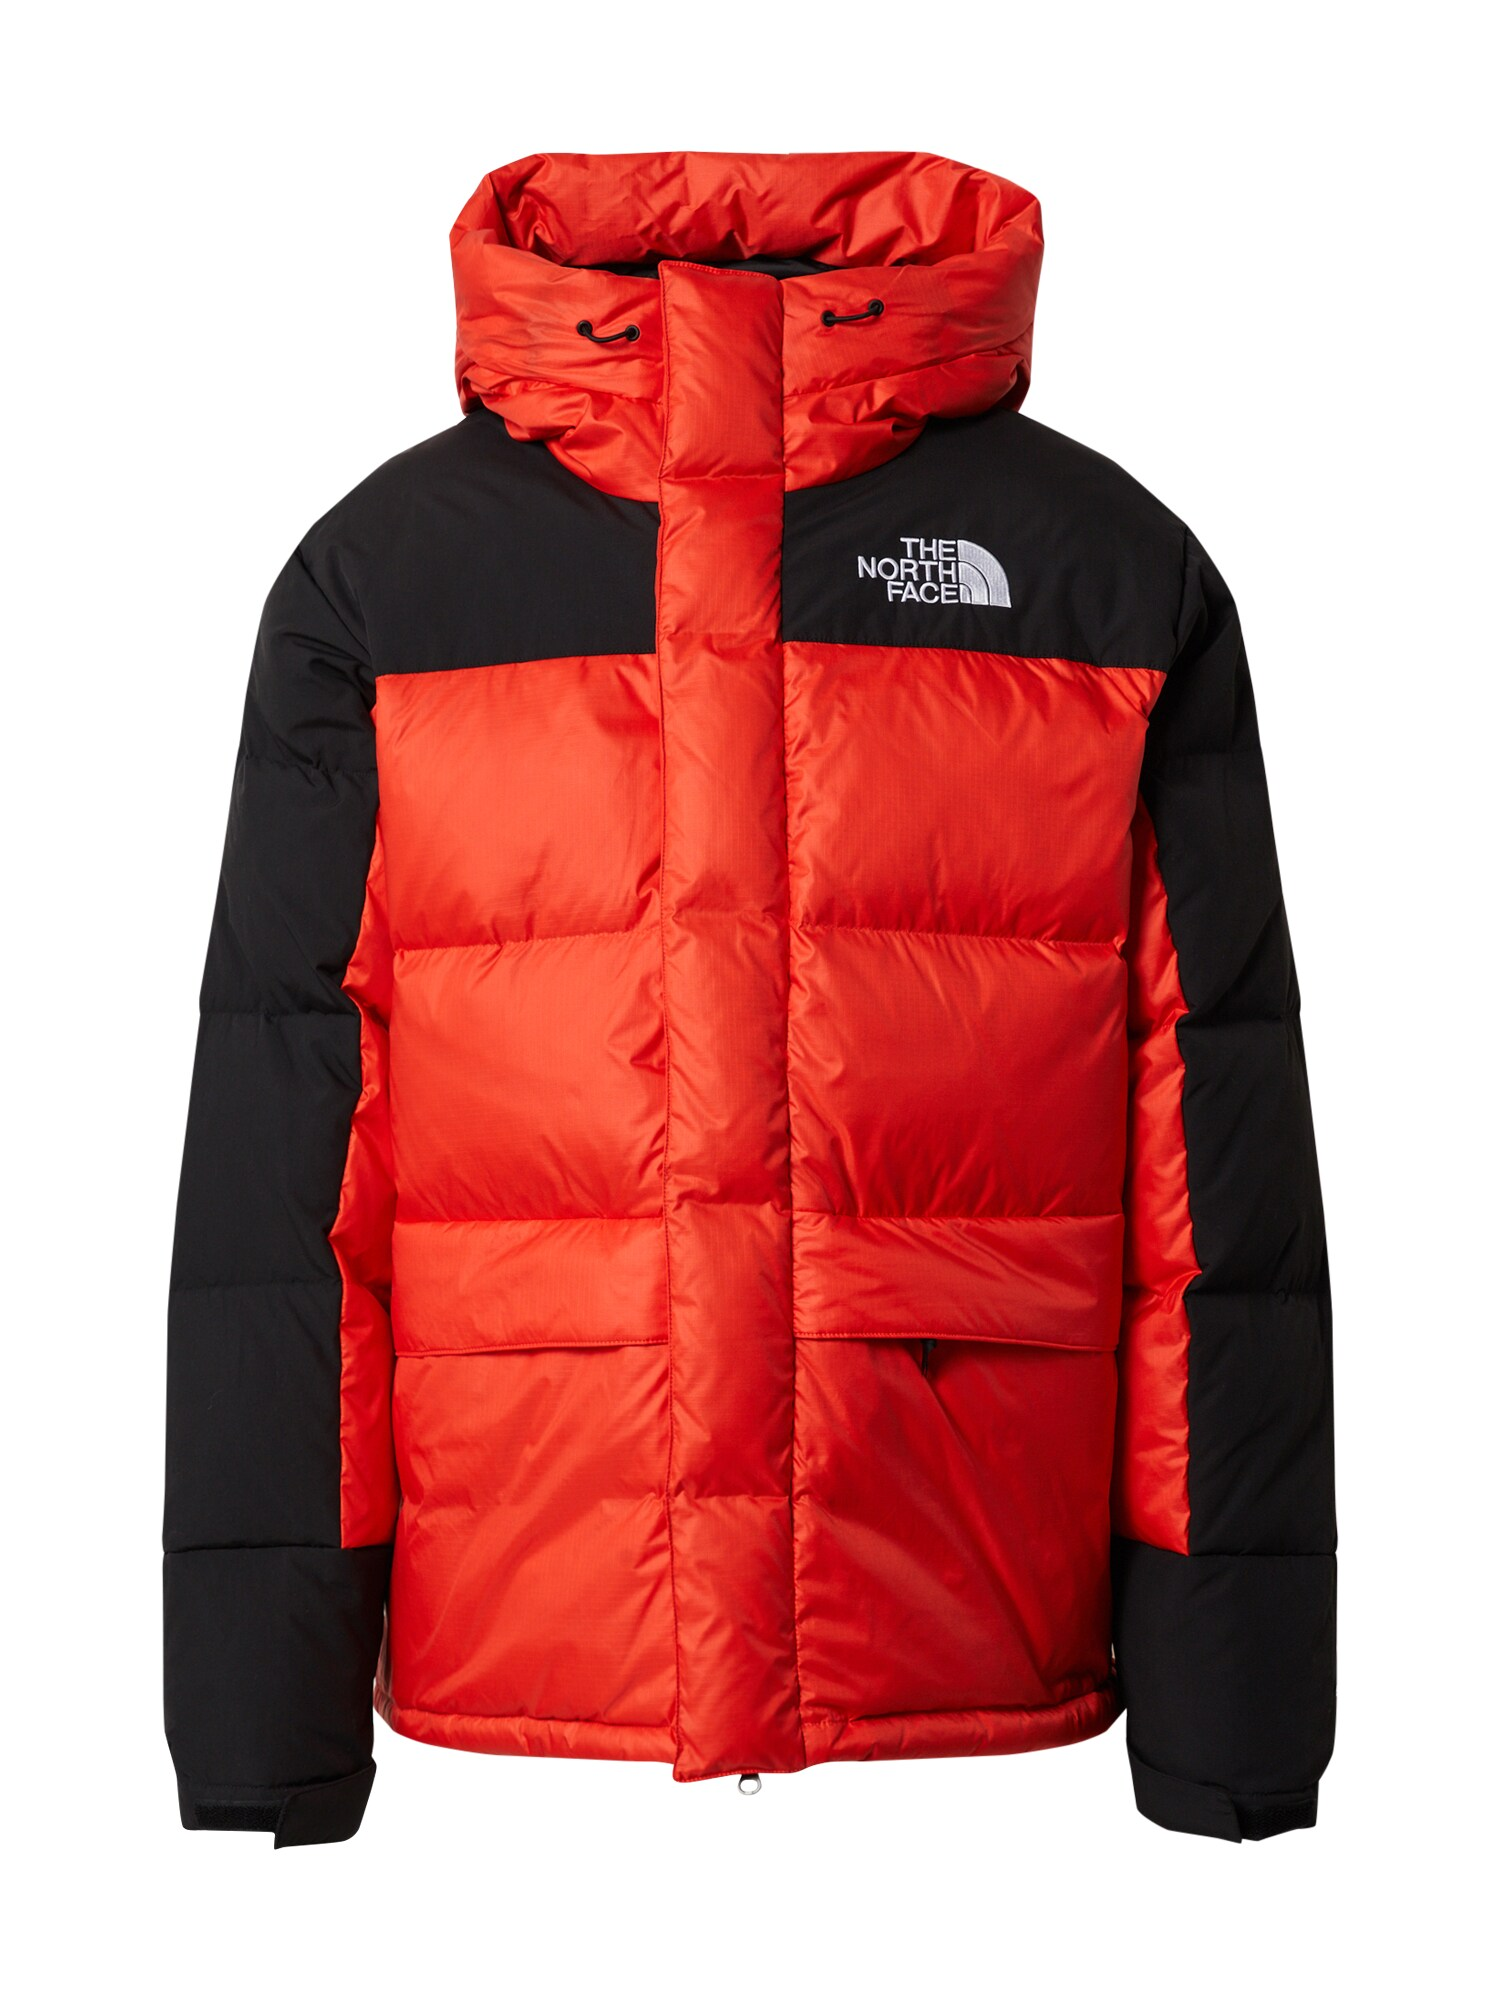 THE NORTH FACE Zimní bunda M HMLYN DOWN PARKA černá červená The North Face